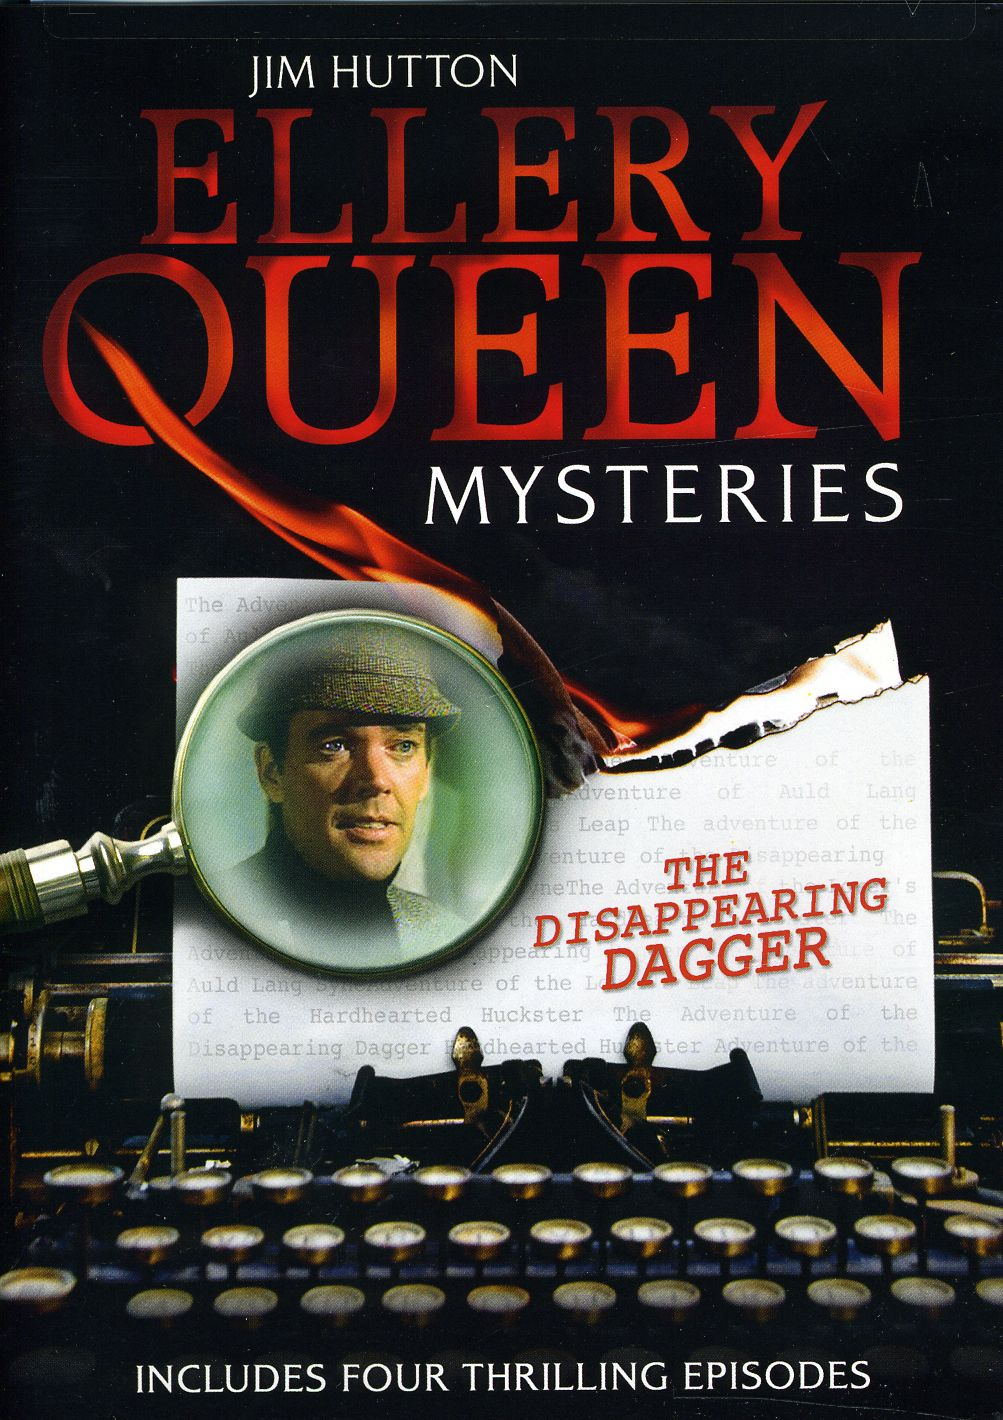 Ellery Queen Mysteries: The Disappearing Dagger (DVD)